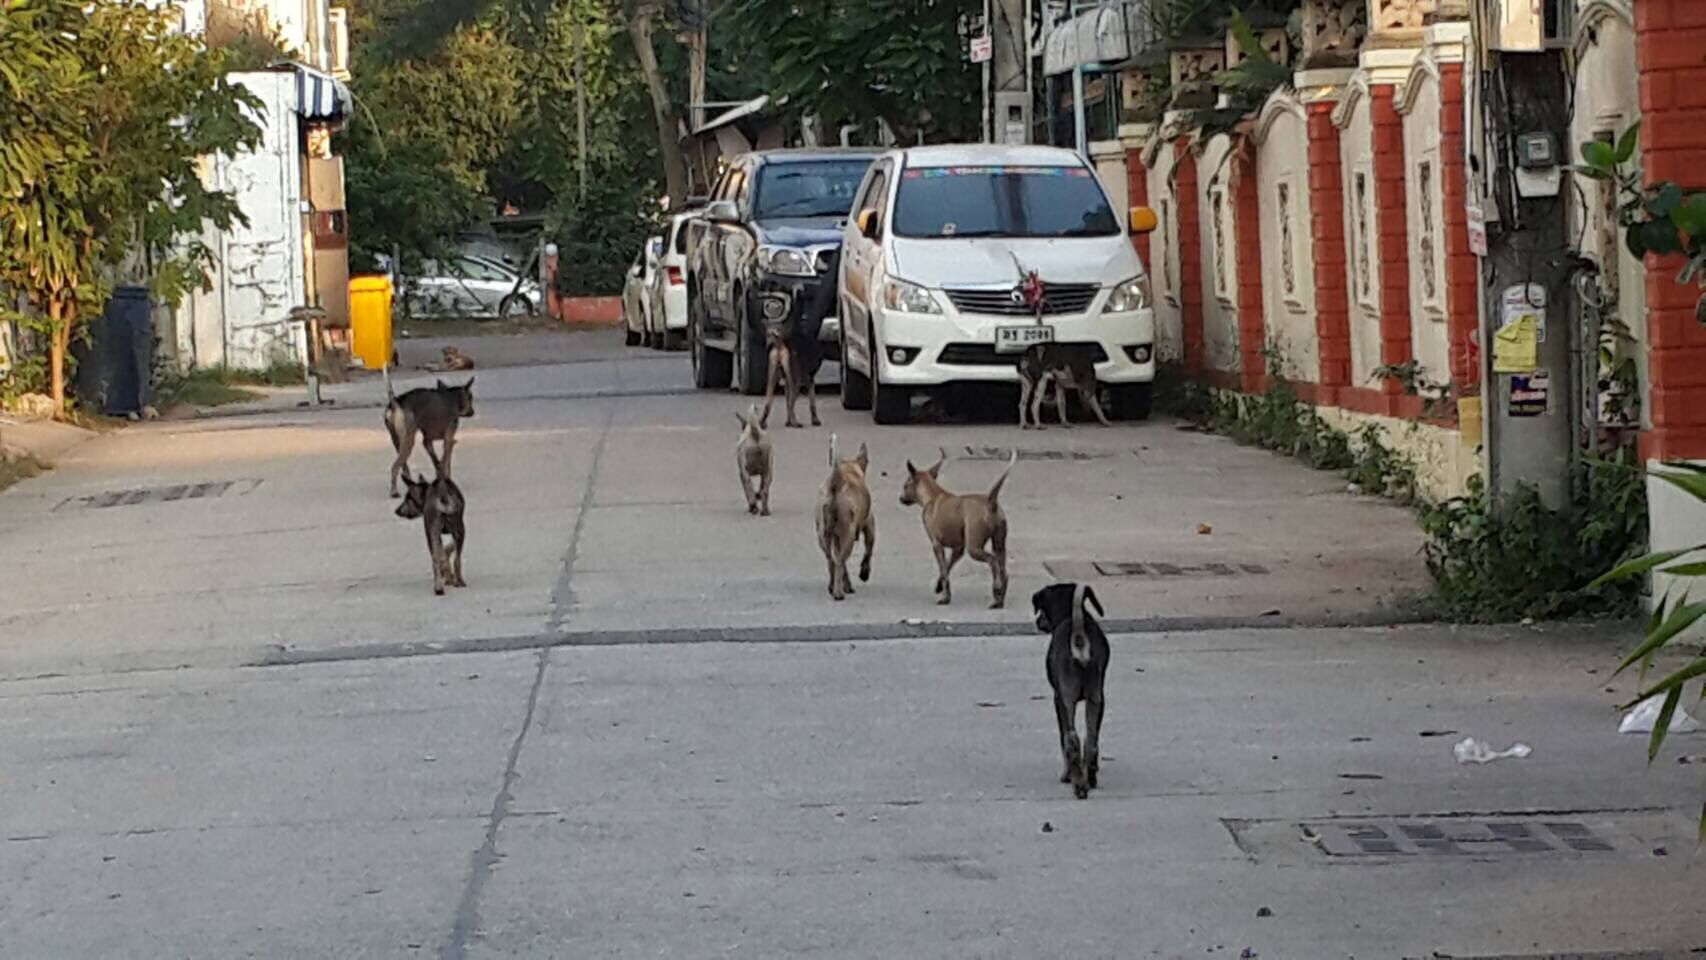 Central Pattaya residents are complaining about a pack of stray dogs that are biting, barking and pooping in their backyards.